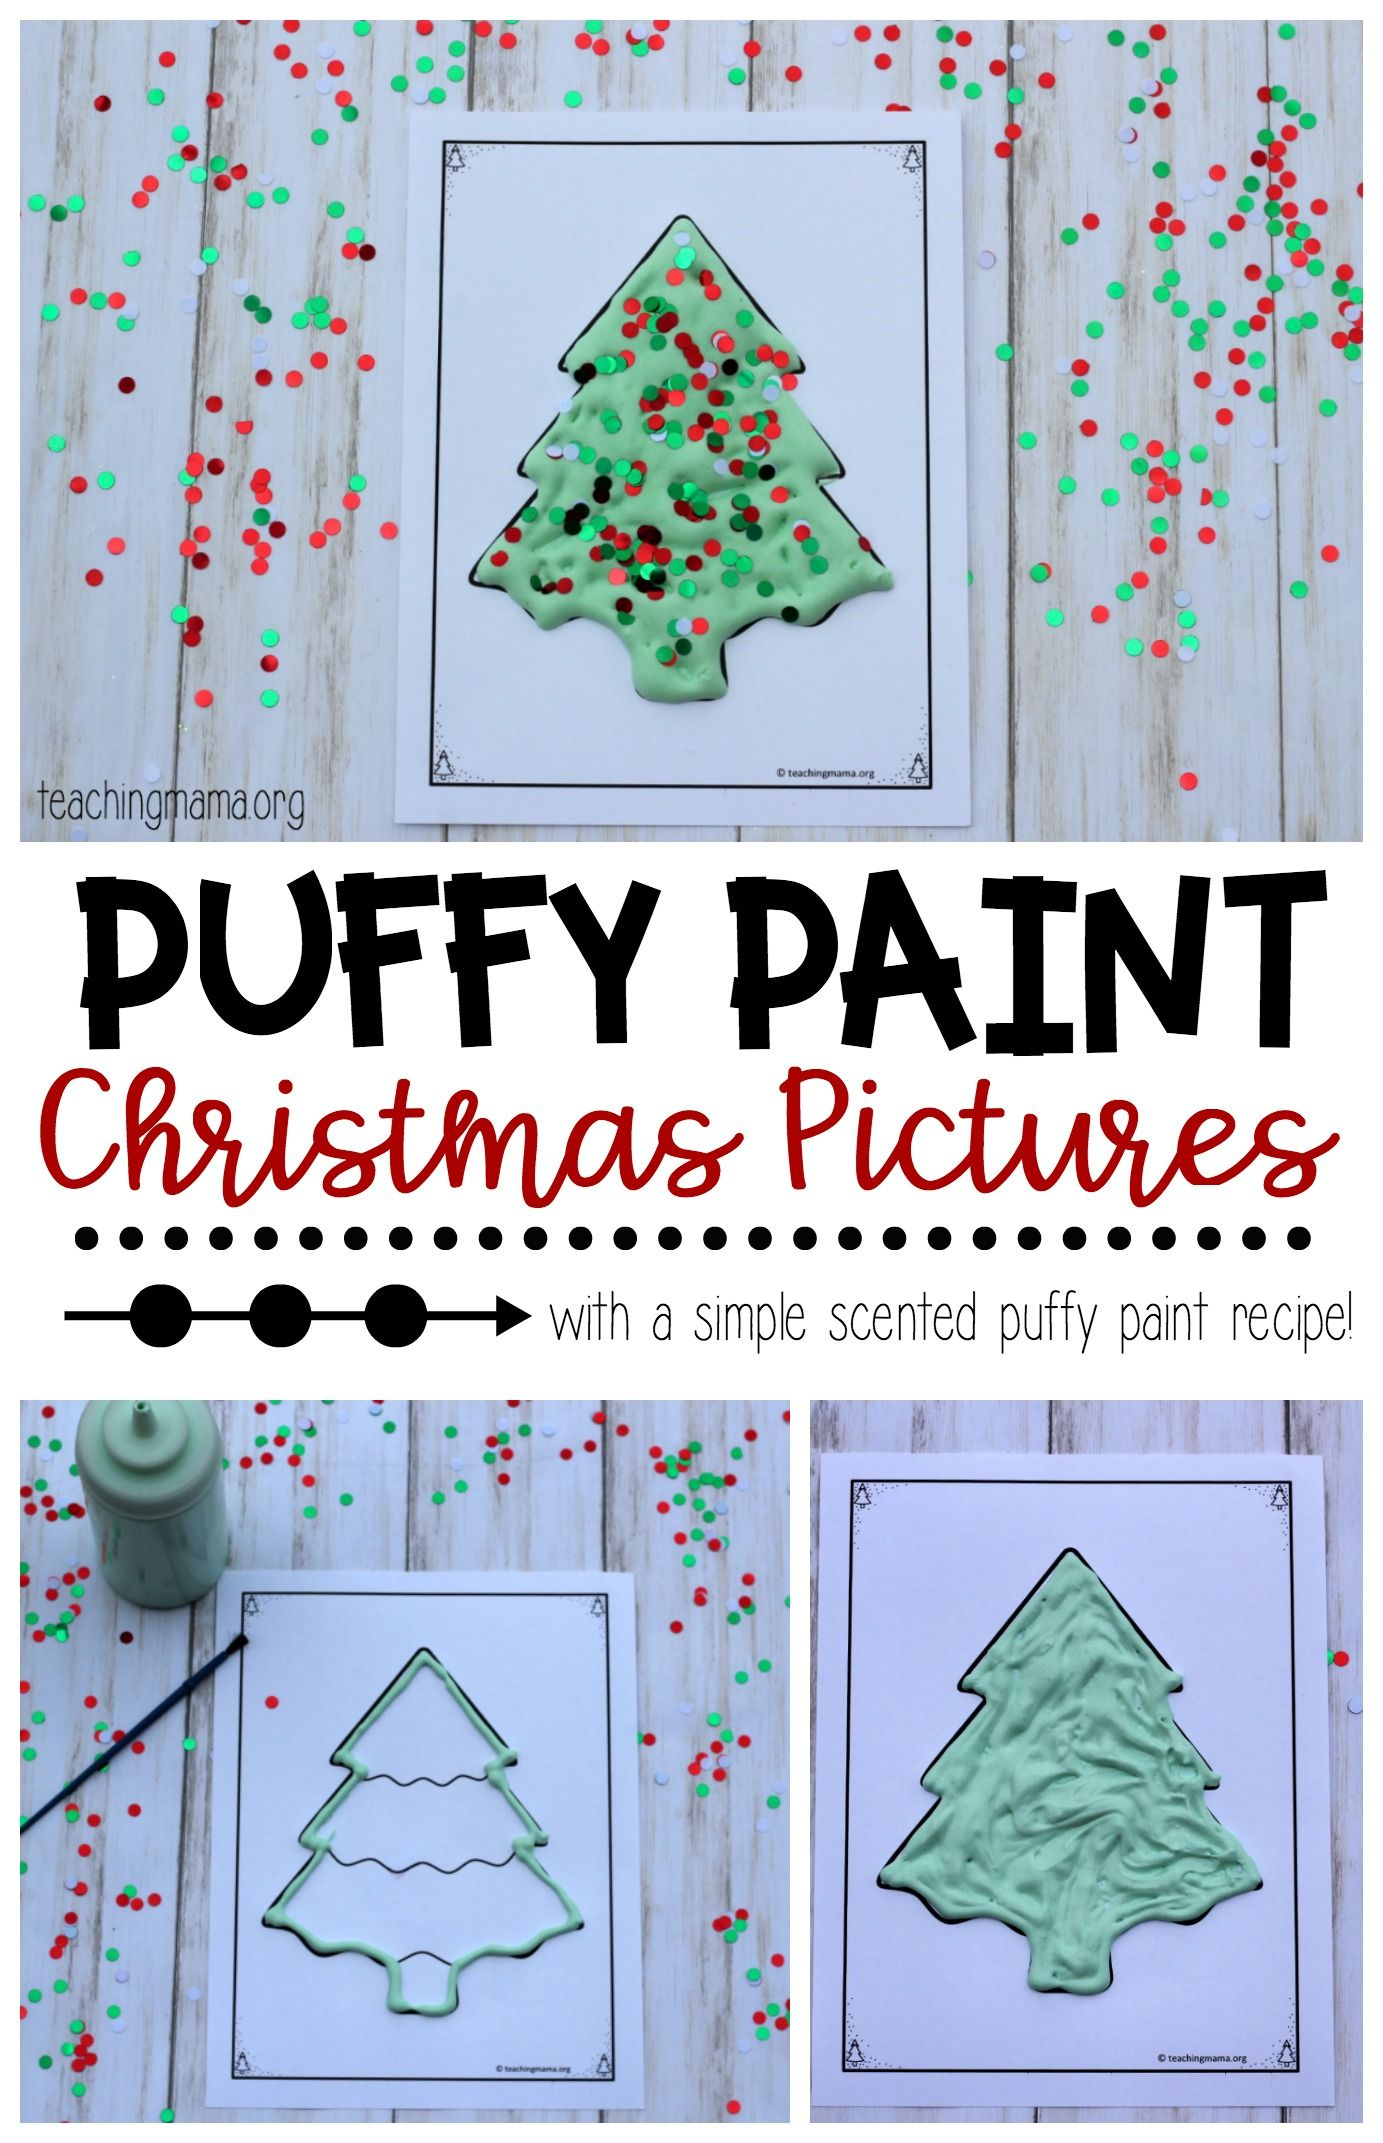 Puffy Paint Christmas Pictures Teaching Mama Preschool Christmas Puffy Paint Crafts Puffy Paint